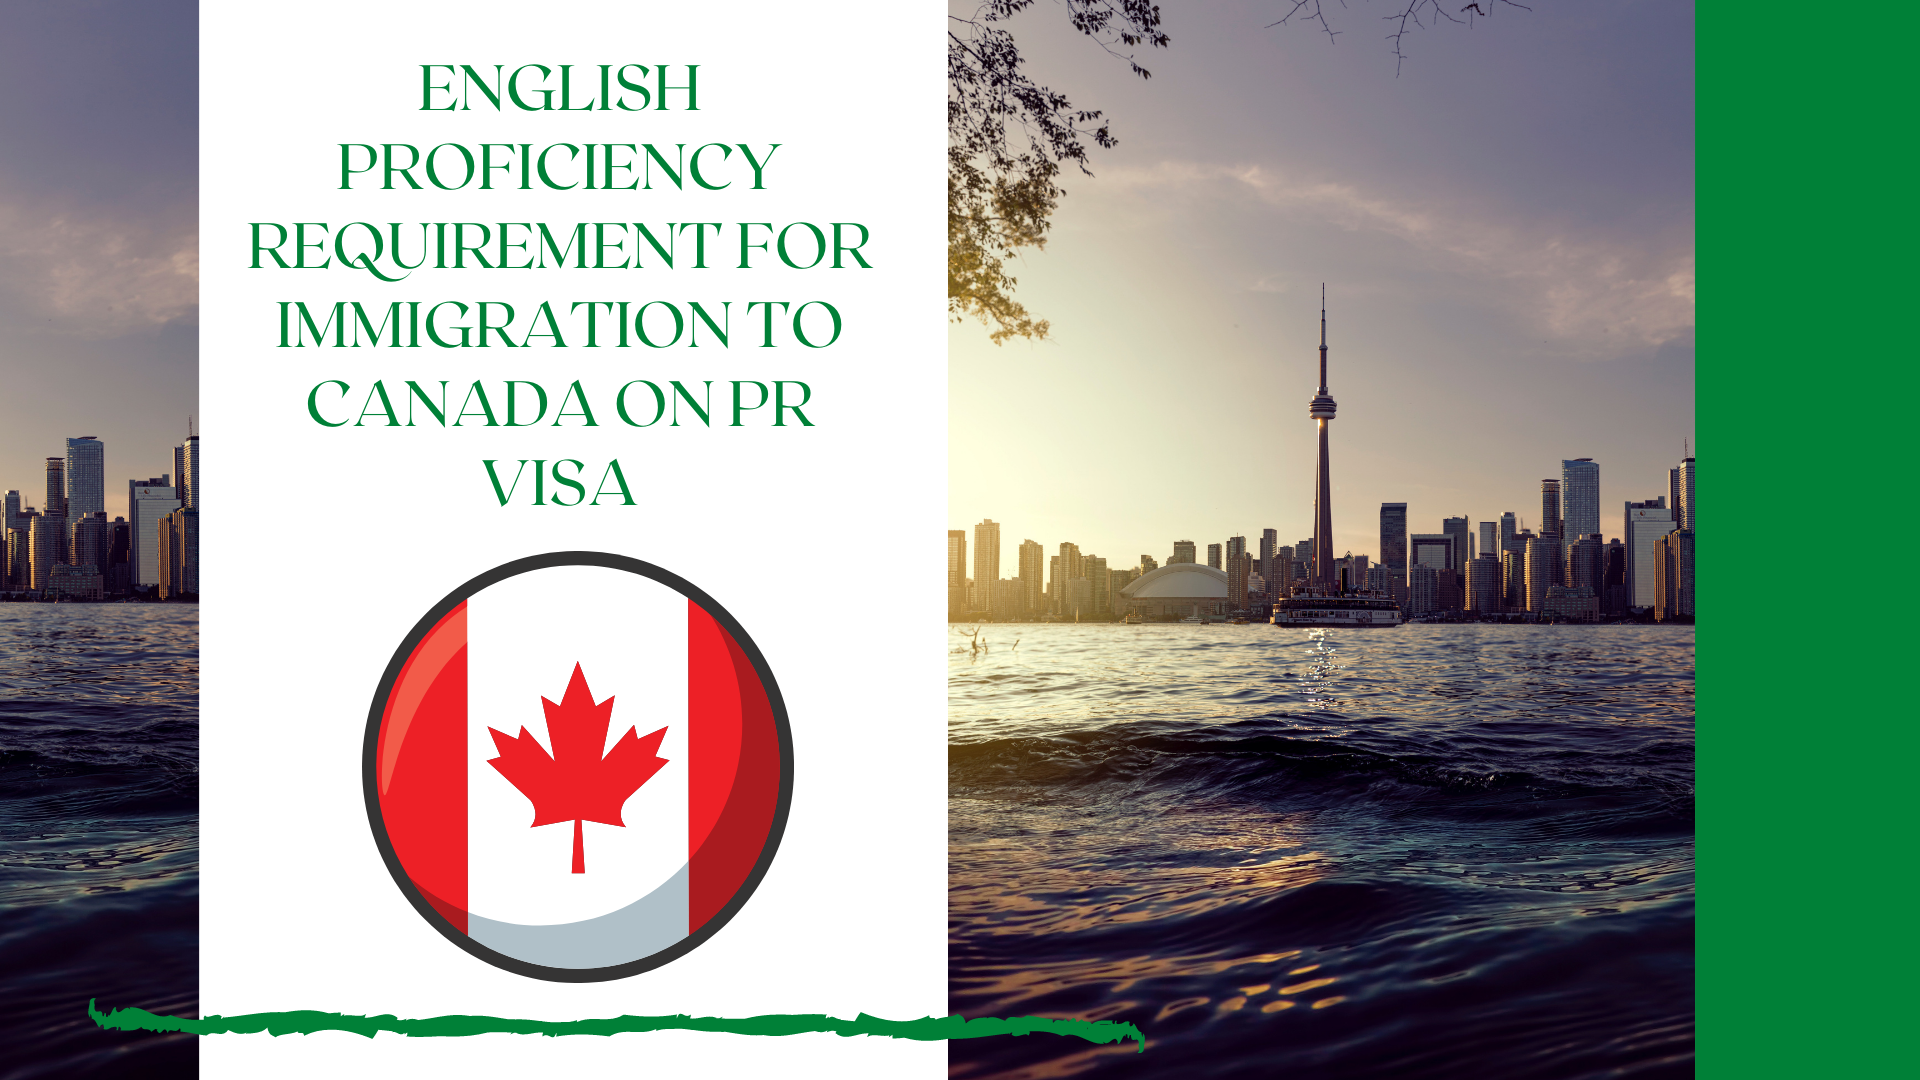 What should be the English proficiency for Canada immigration on PR Visa?